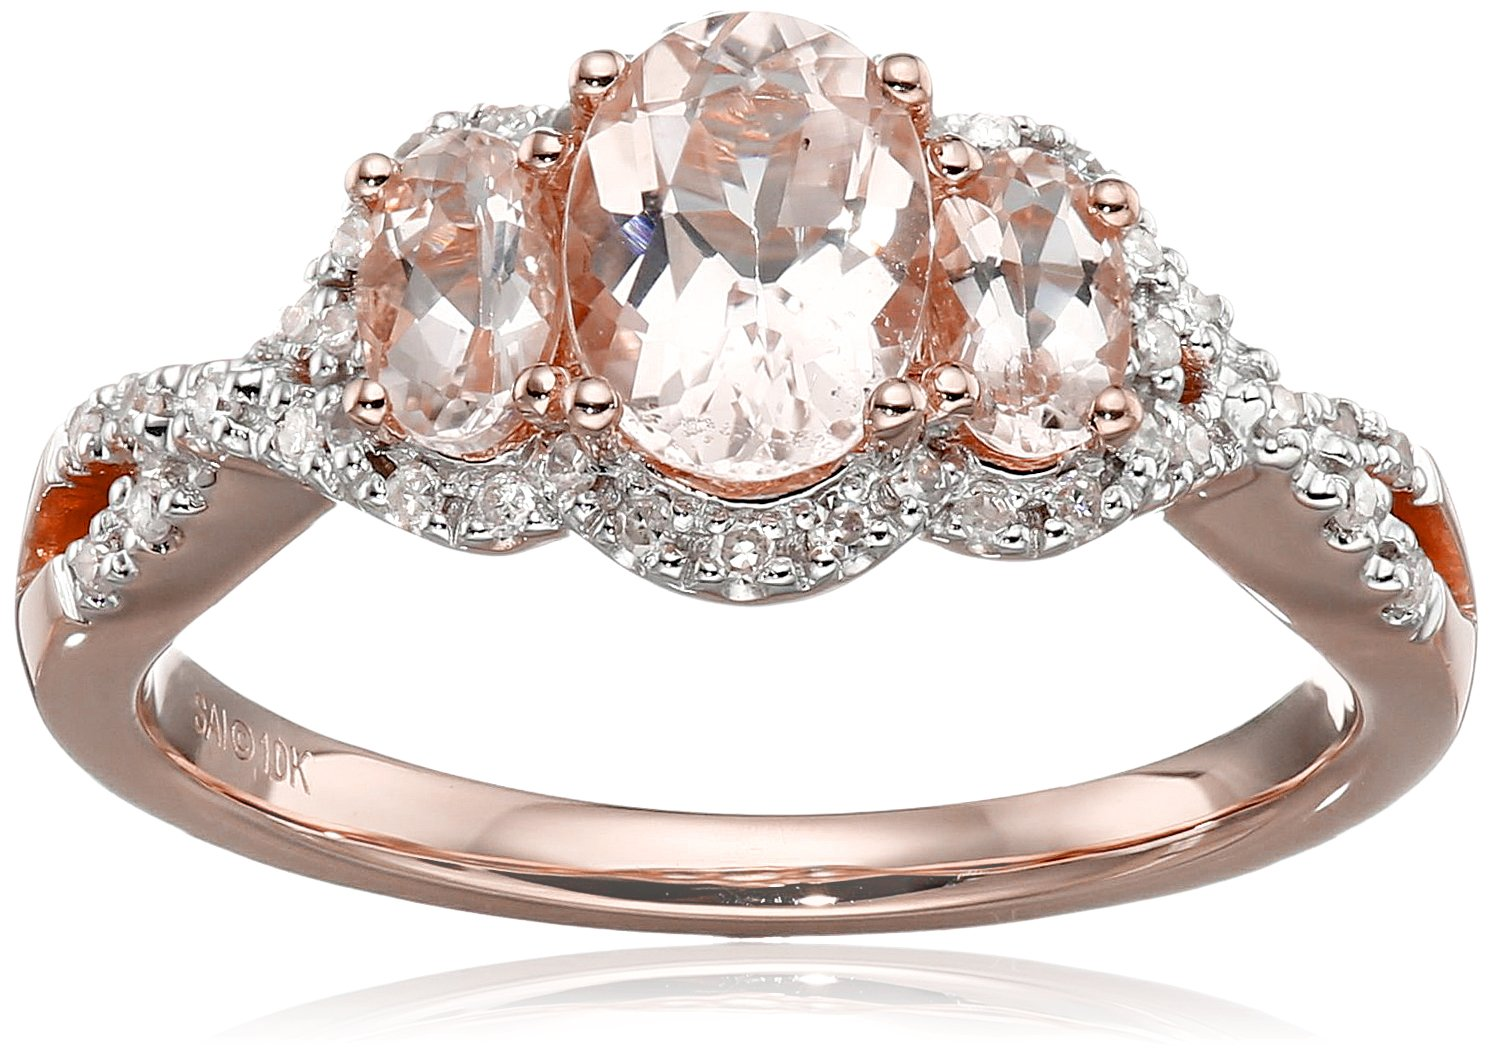 10k Pink Gold Morganite and Diamond 3-Stone Ring (1/10cttw, I-J Color, I2-I3 Clarity), Size 7 by Amazon Collection